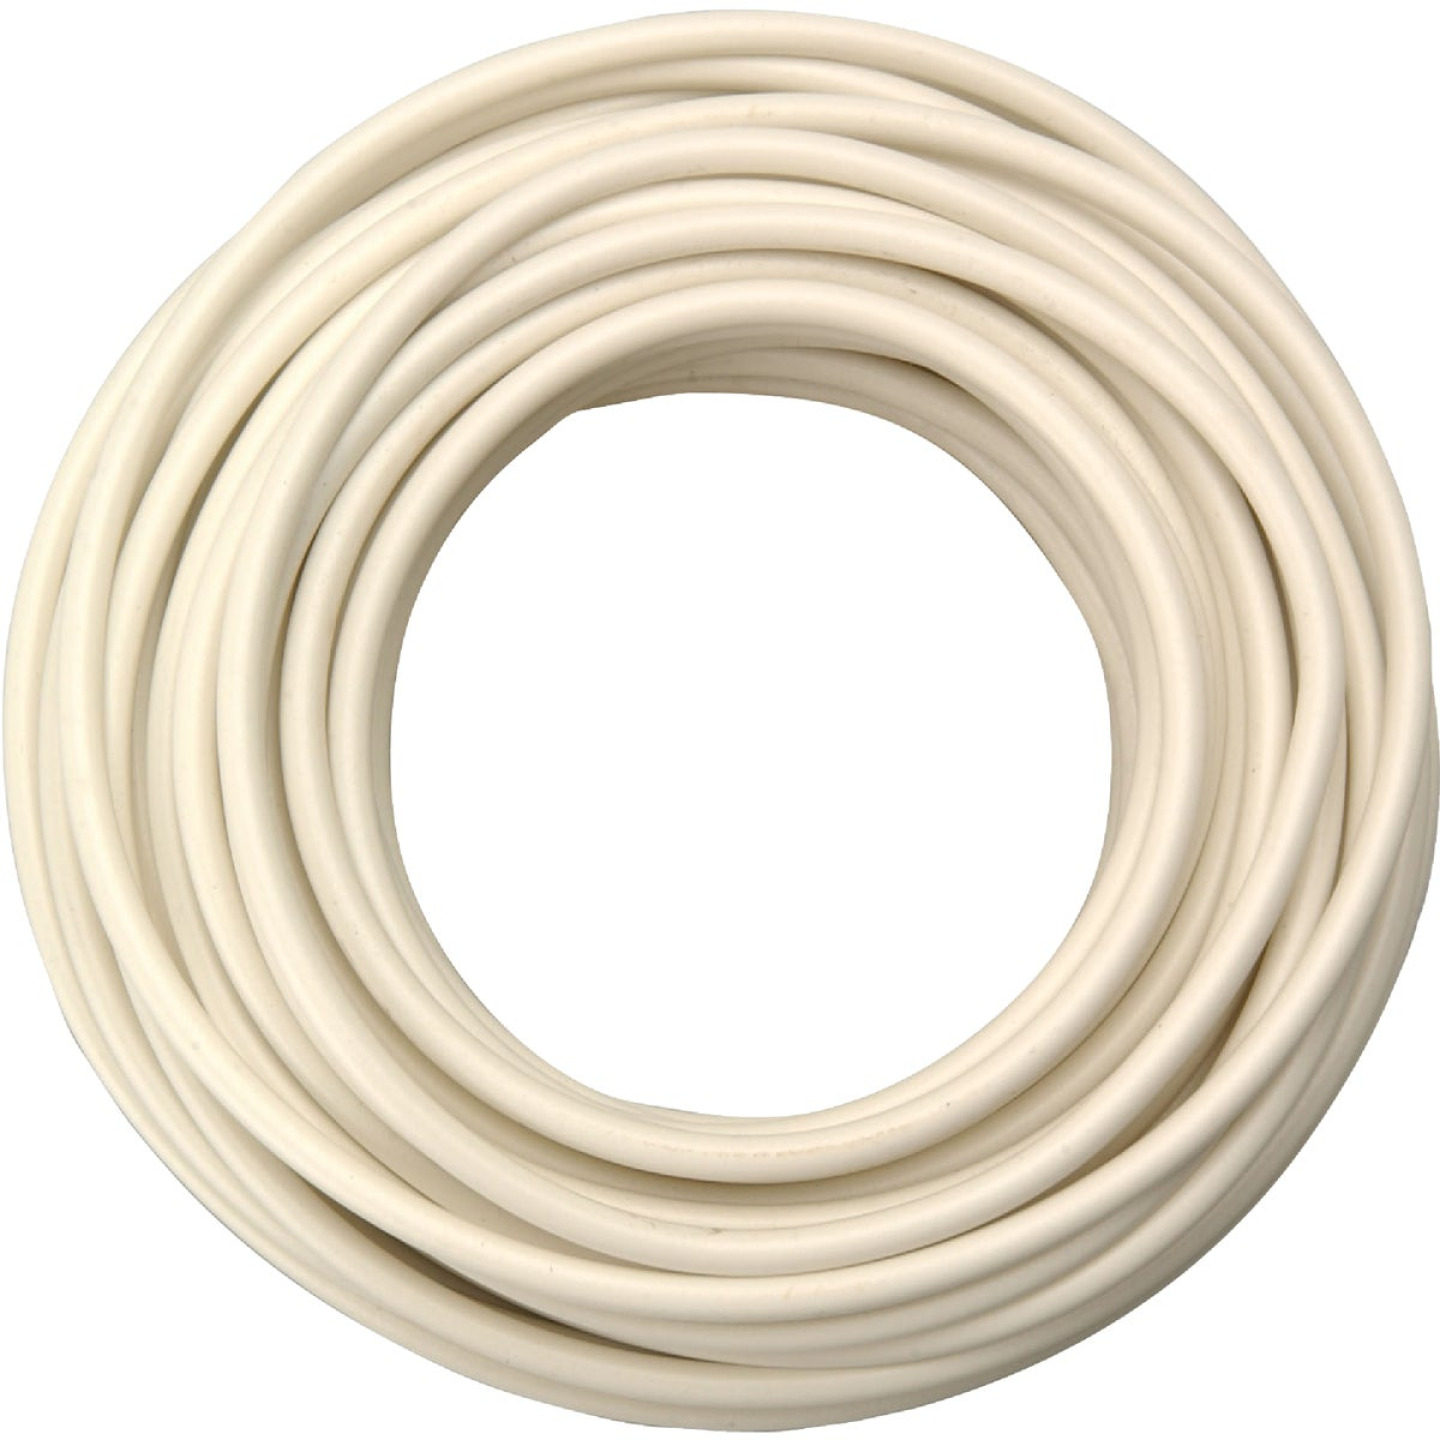 ROAD POWER 33 Ft. 18 Ga. PVC-Coated Primary Wire, White Image 1